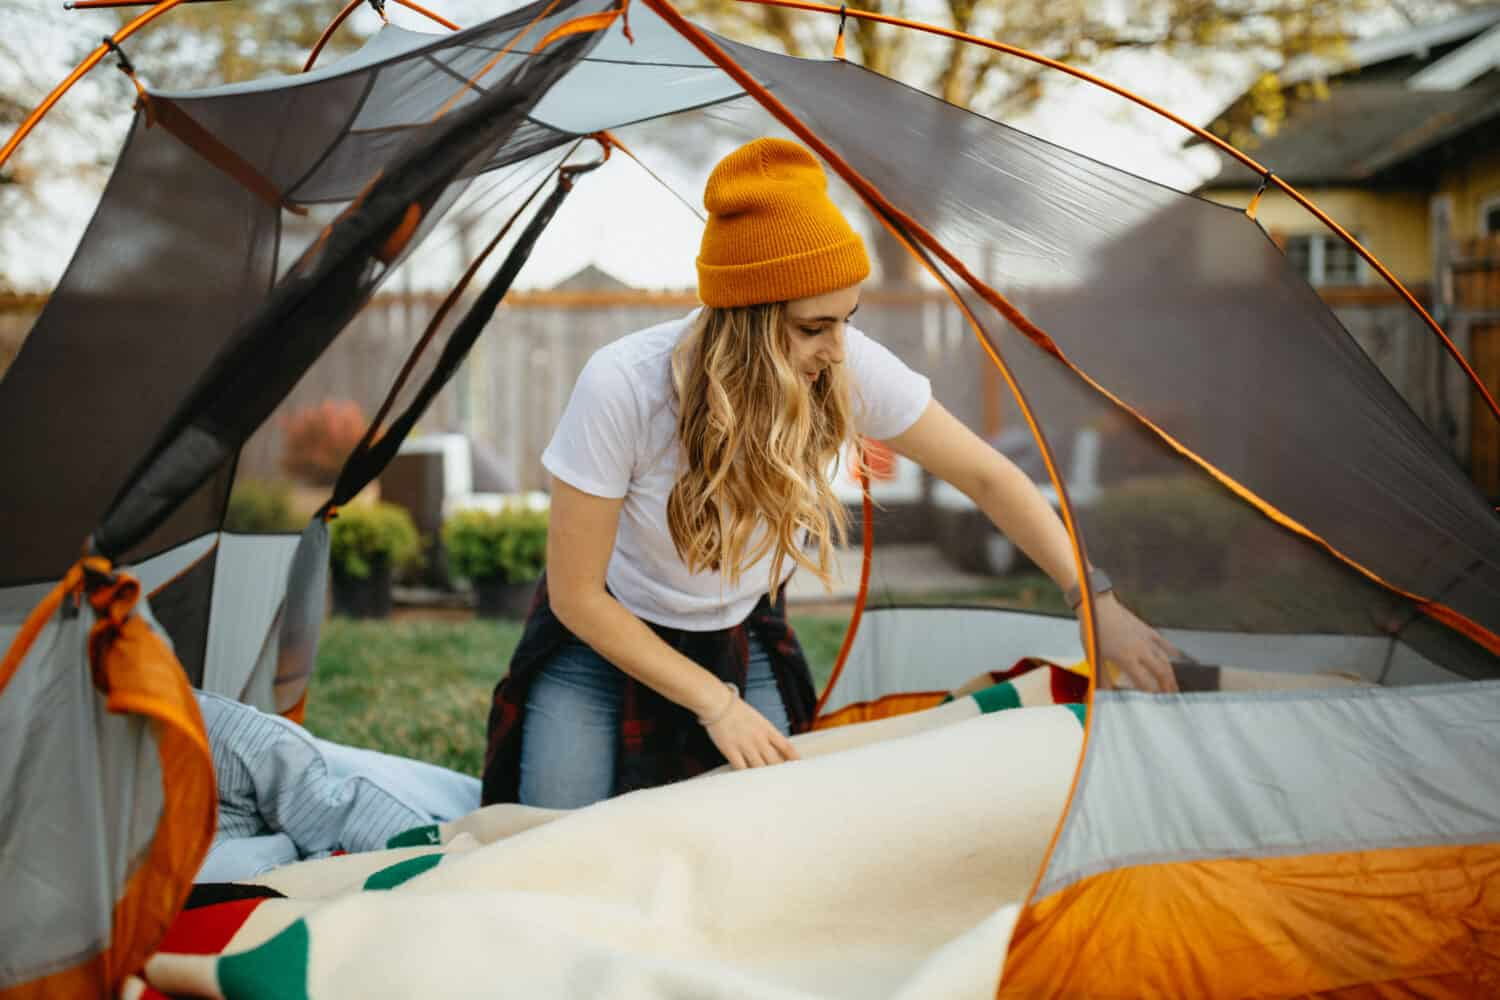 Emily Mandagie setting up backyard camping area